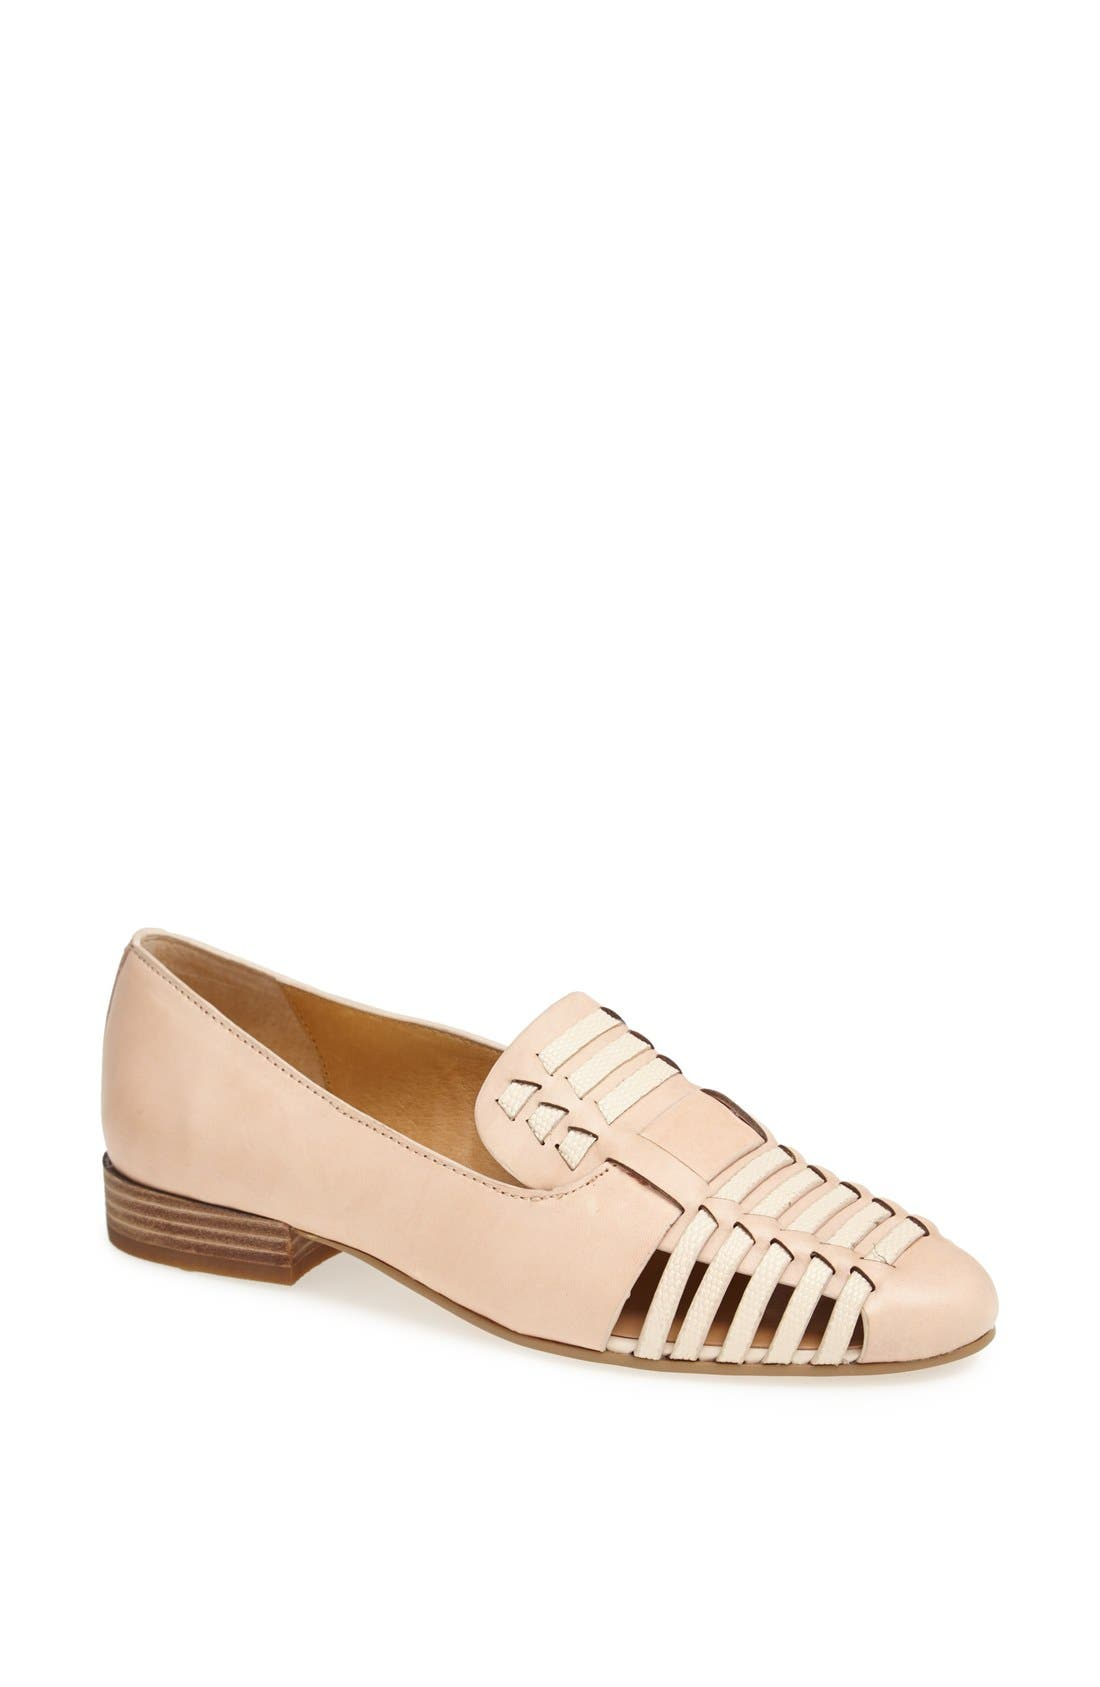 Main Image - Dolce Vita 'Cealey' Flat